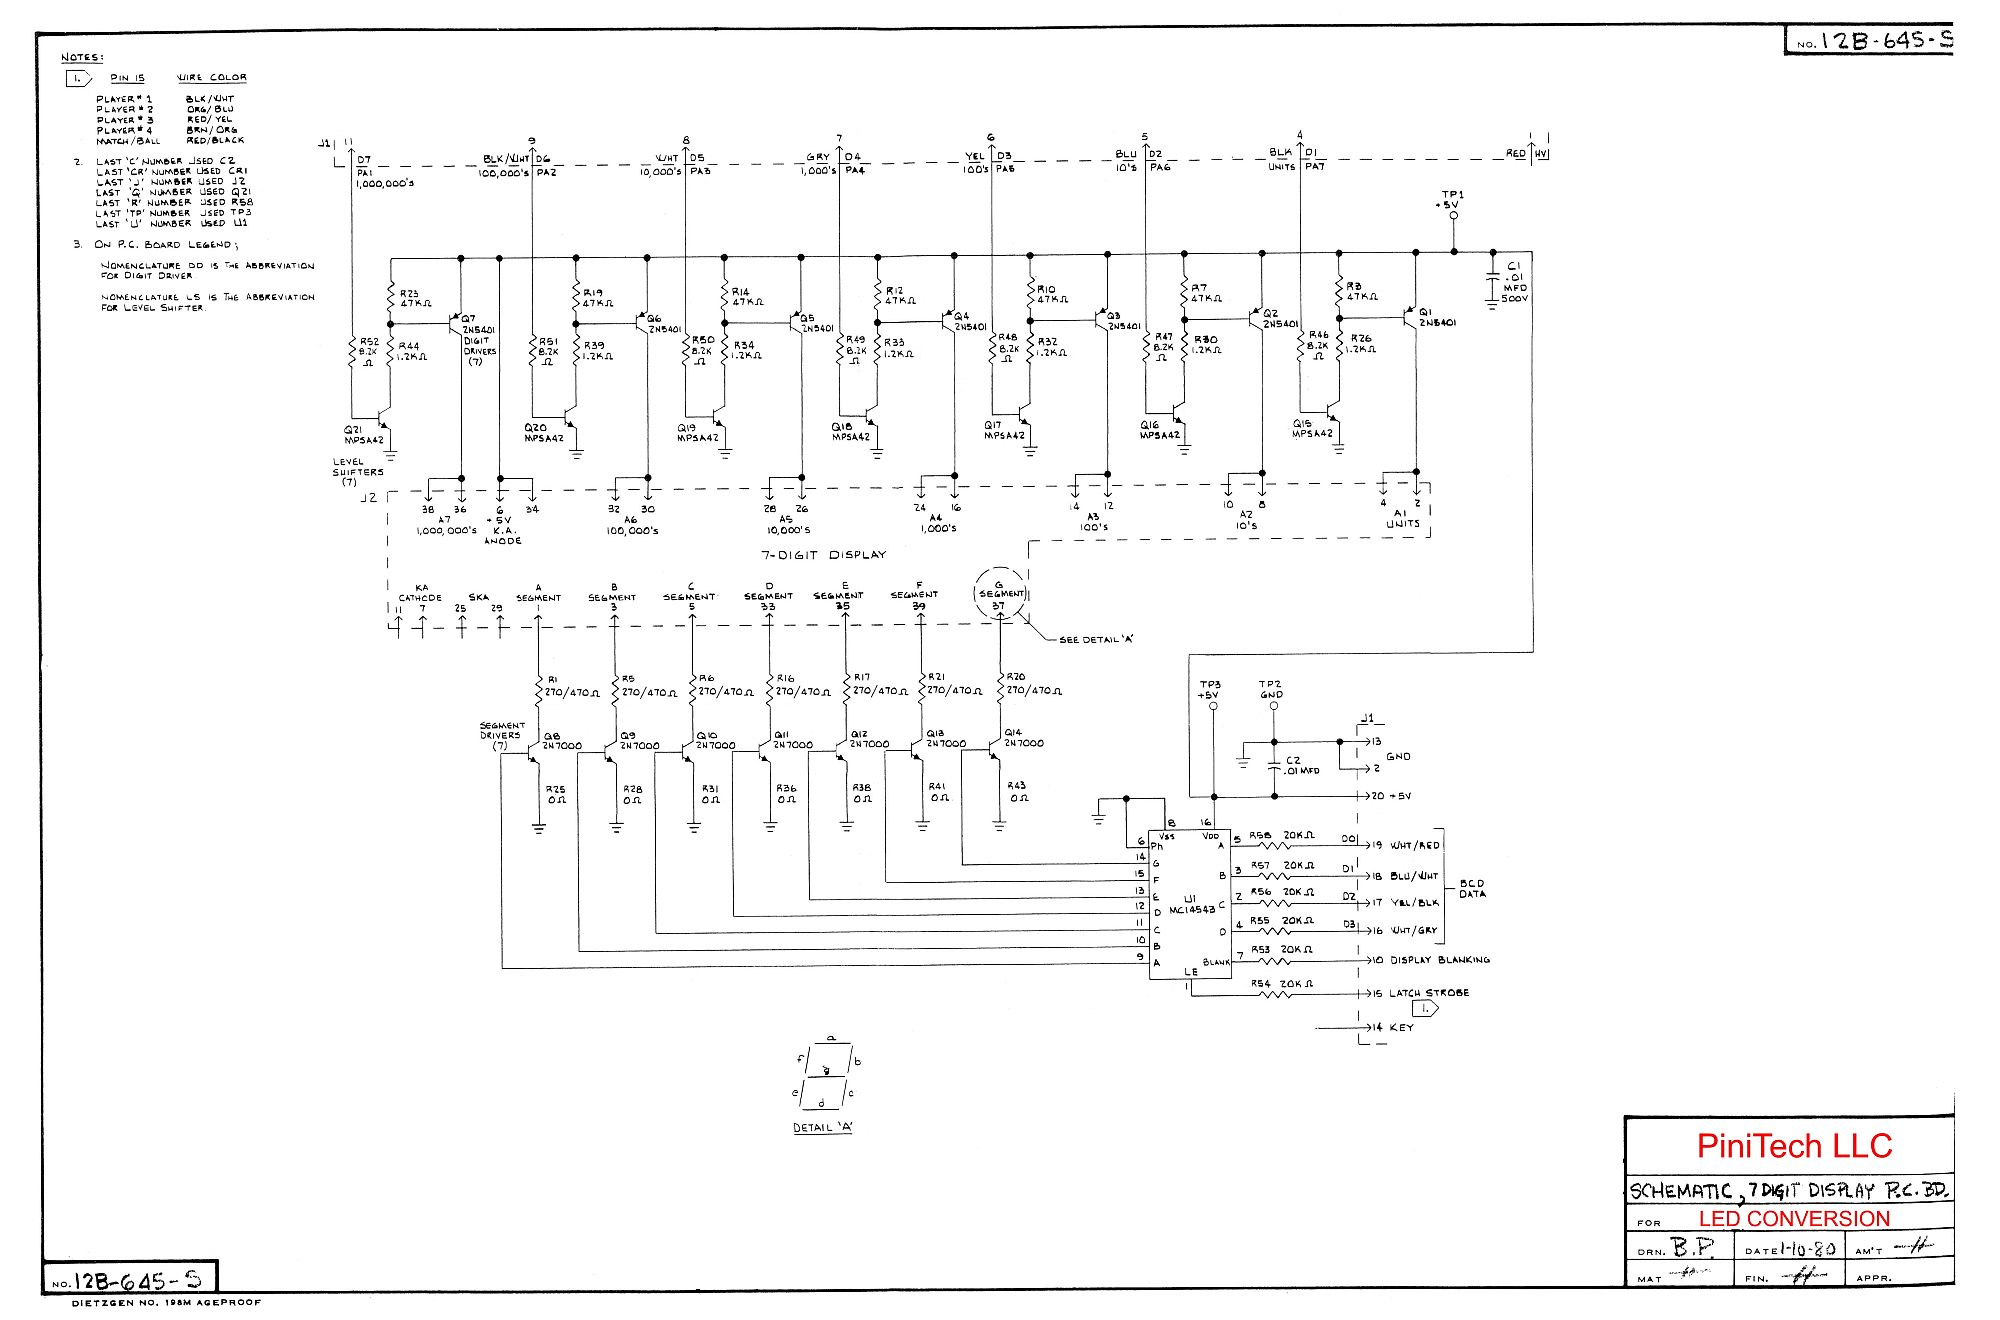 Classic Bally/Stern Display Schematics - Pinitech